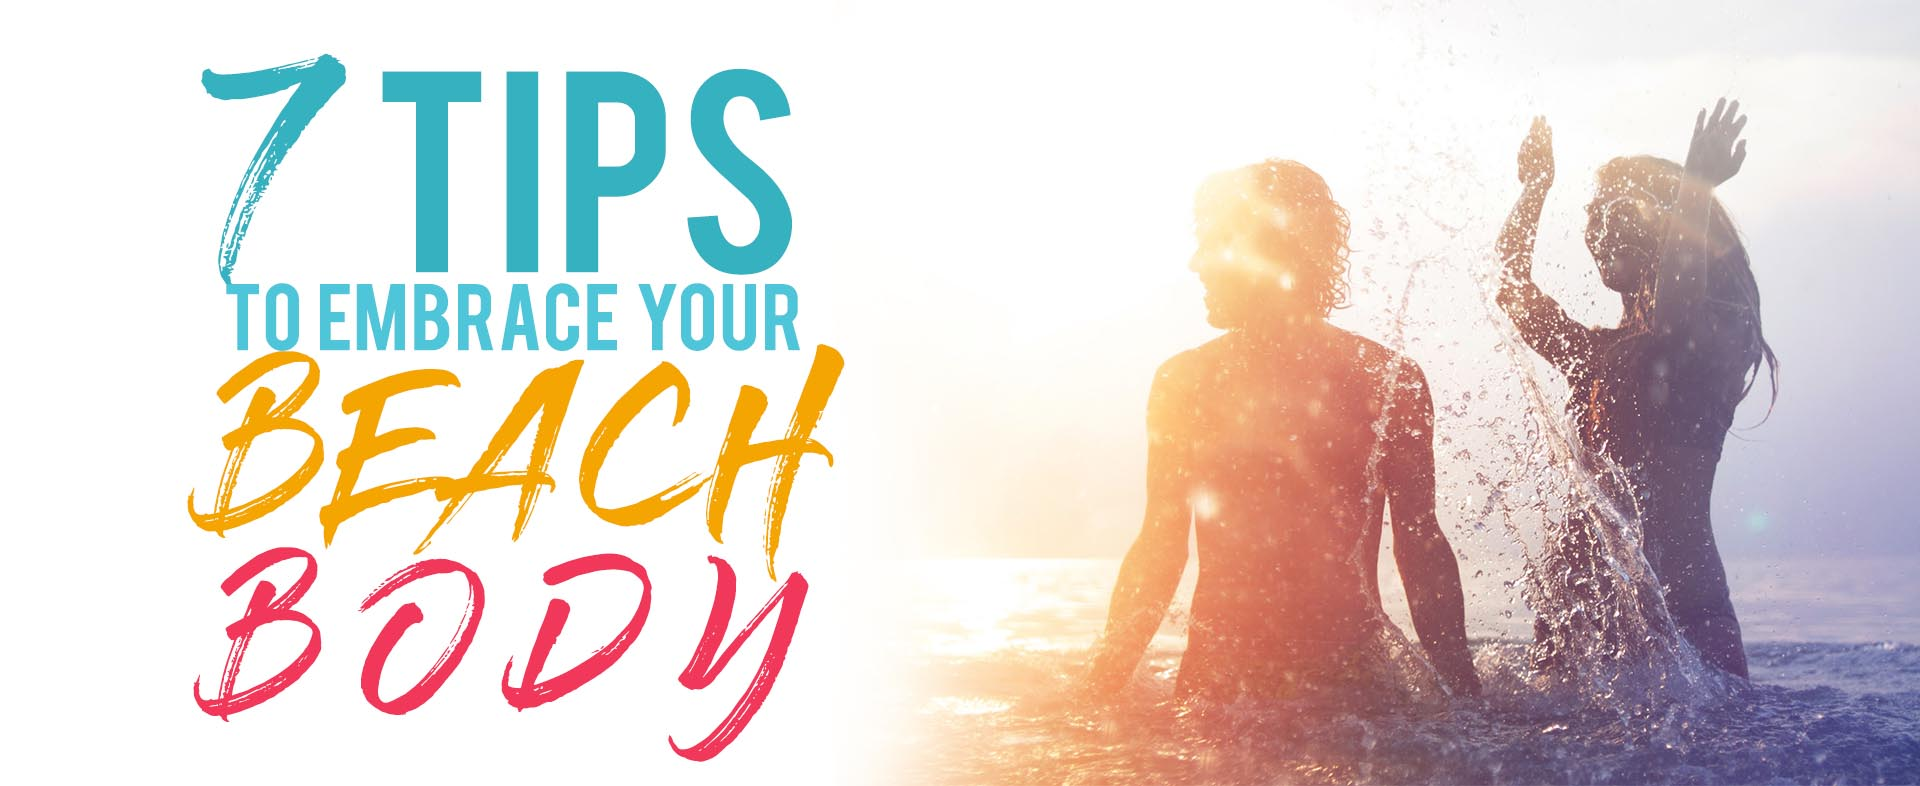 7 Tips to Embrace you Beach Body